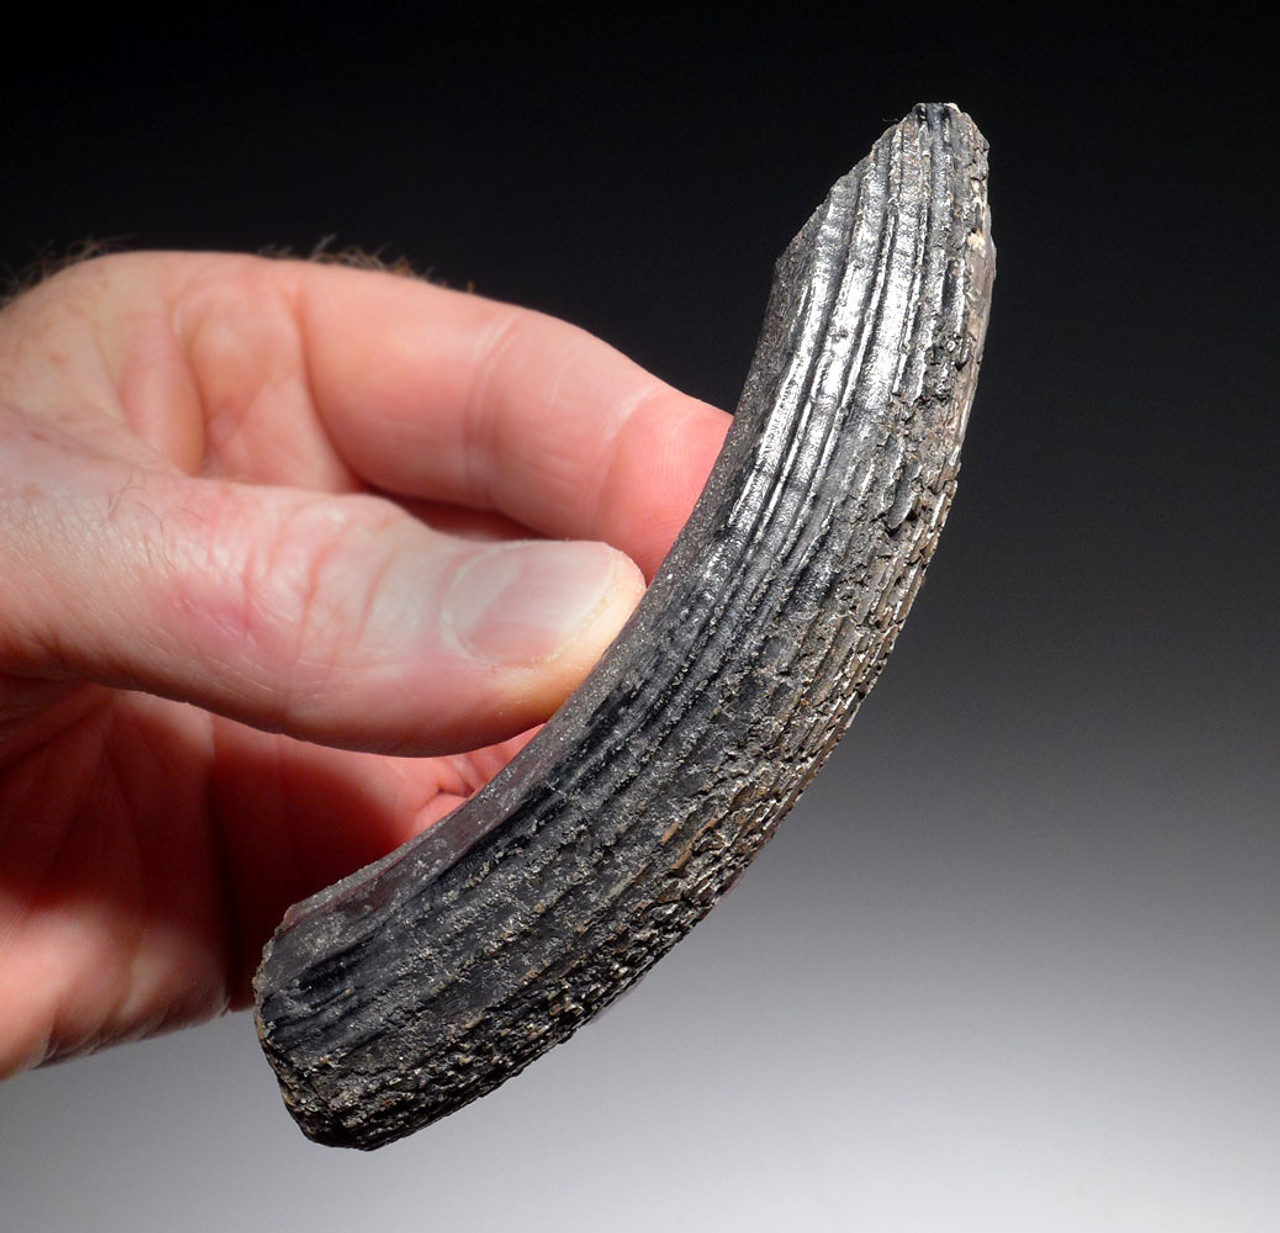 LARGE FAT UNBROKEN GIANT BEAVER FOSSIL TUSK INCISOR *LMX197